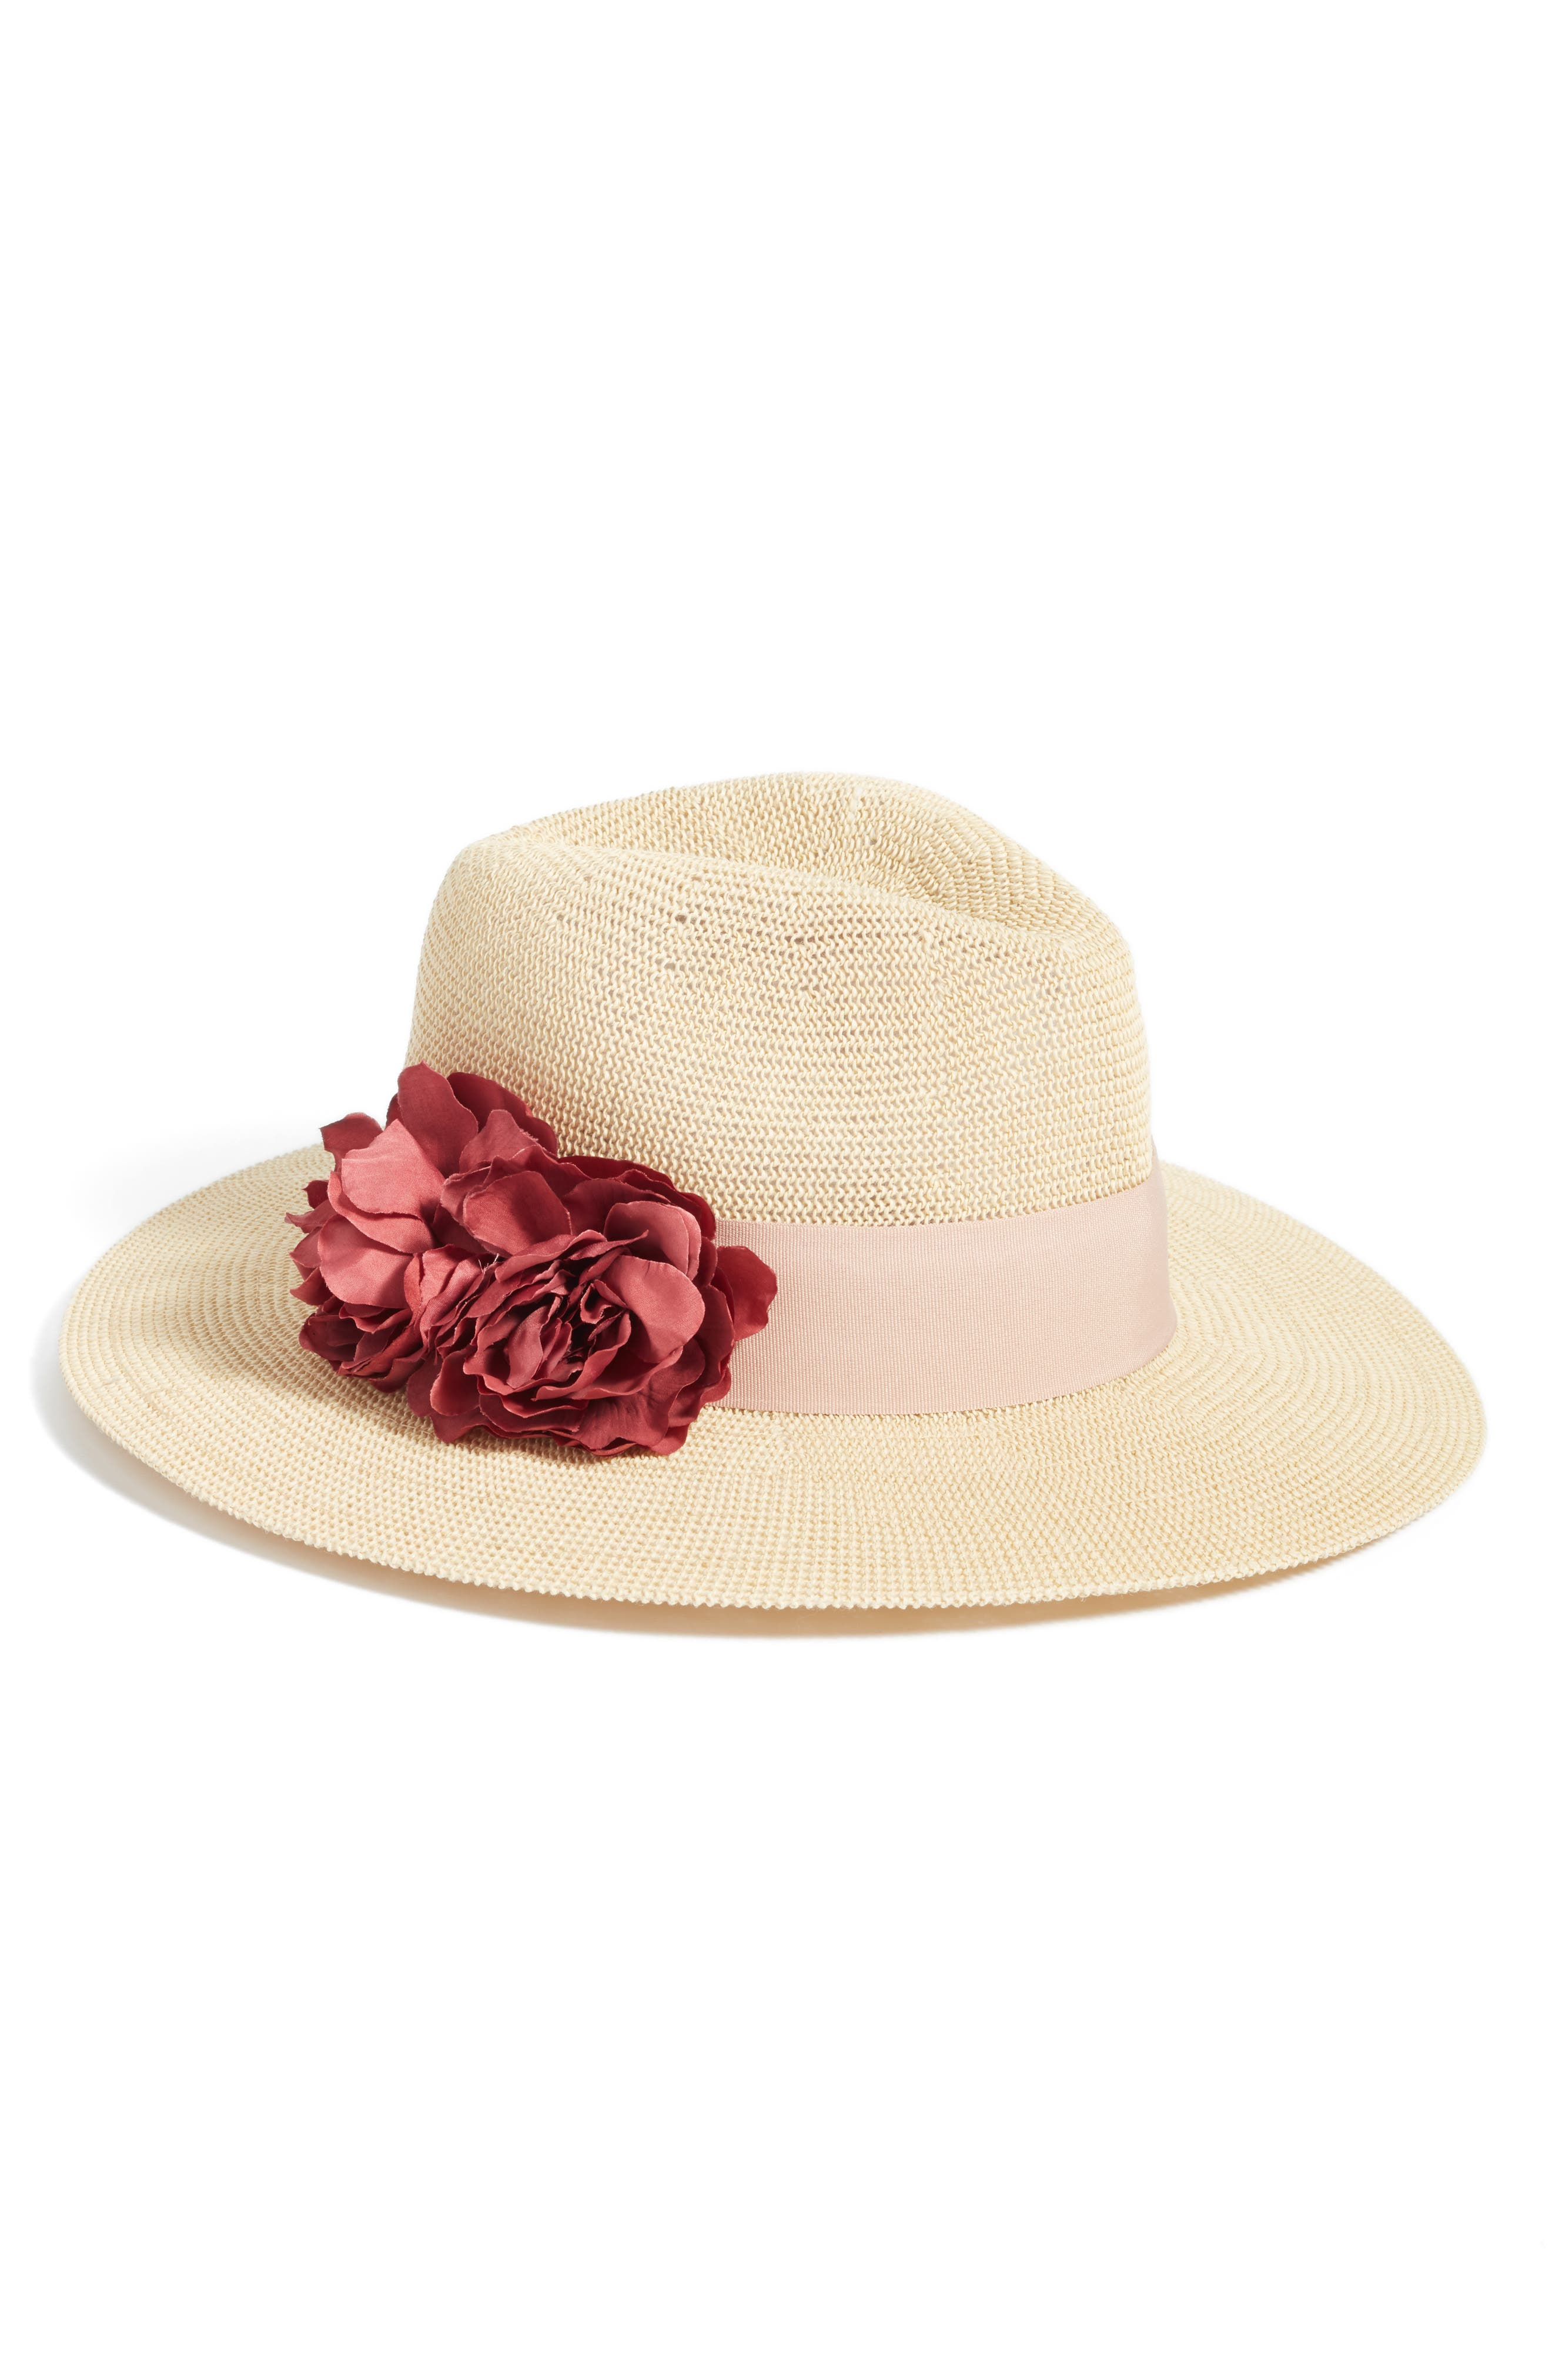 Vince Camuto Floral Trim Straw Panama Hat